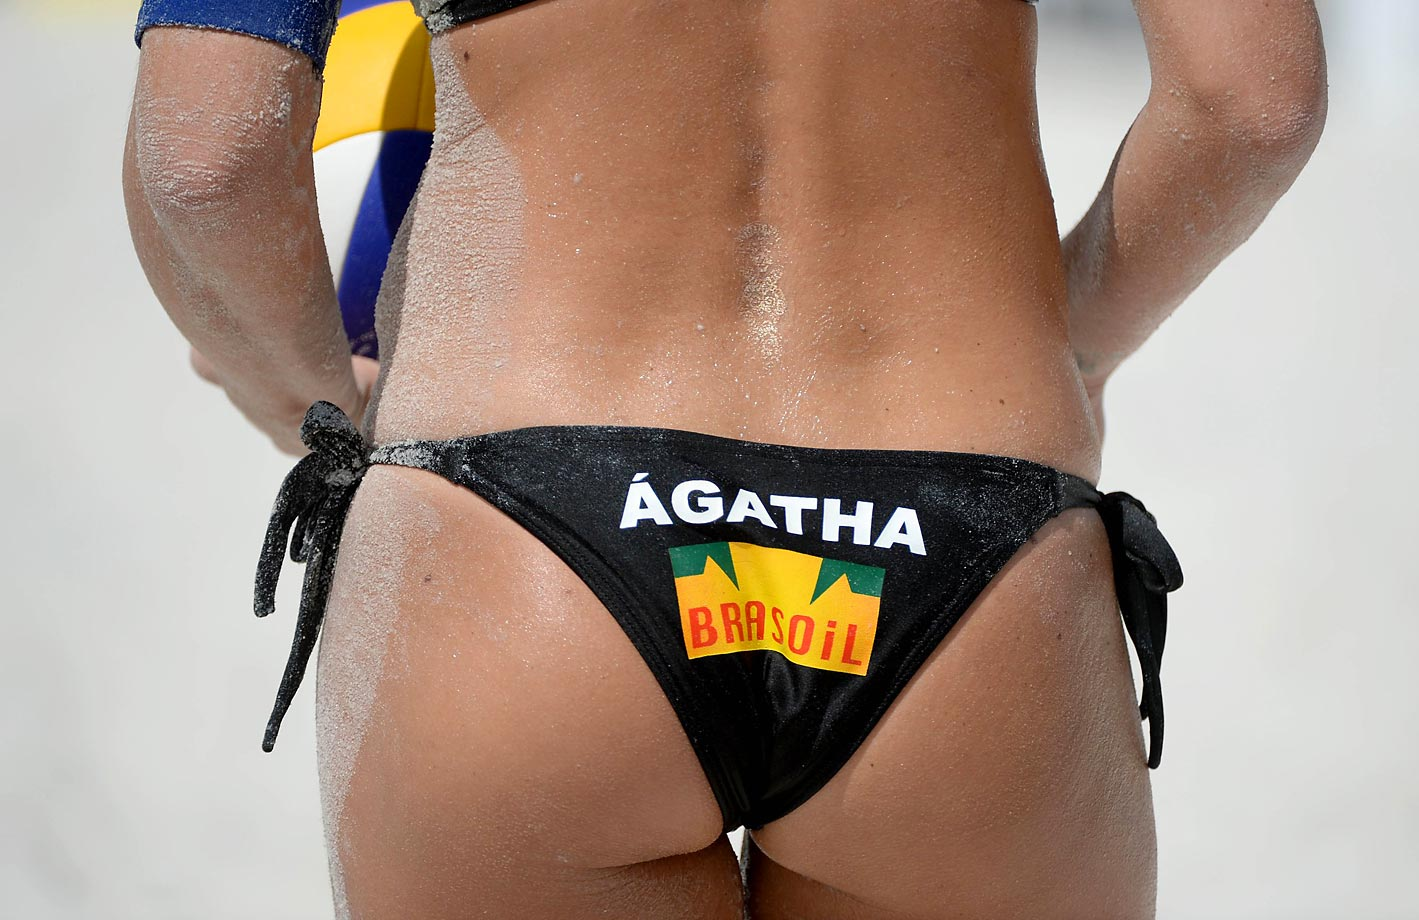 A detail shot of Agatha Bednarczuk of Brazil.